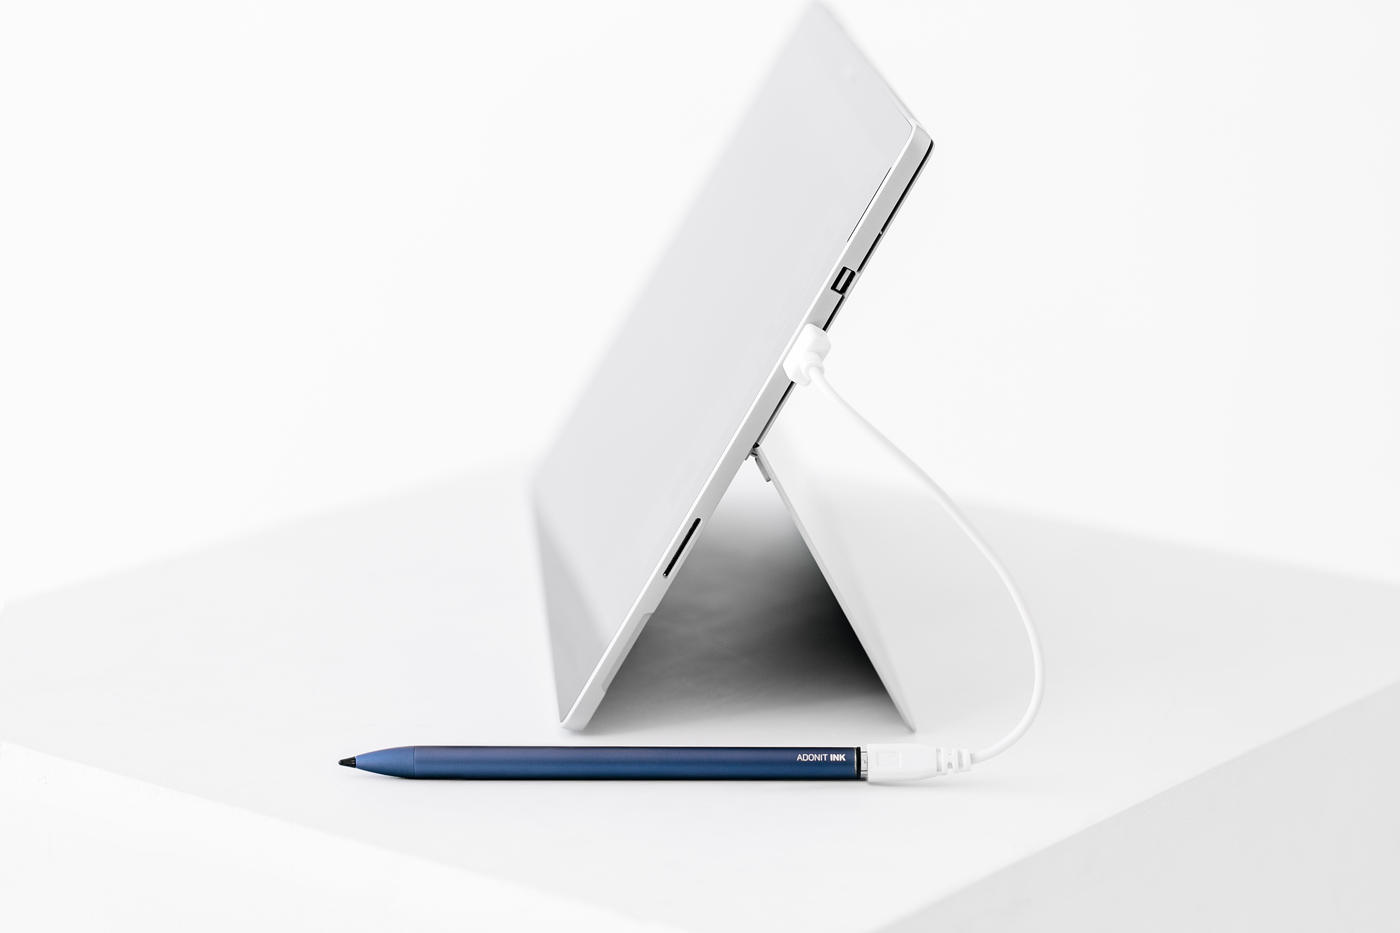 Cool Tech: Introducing Adonit Ink Stylus made for Windows